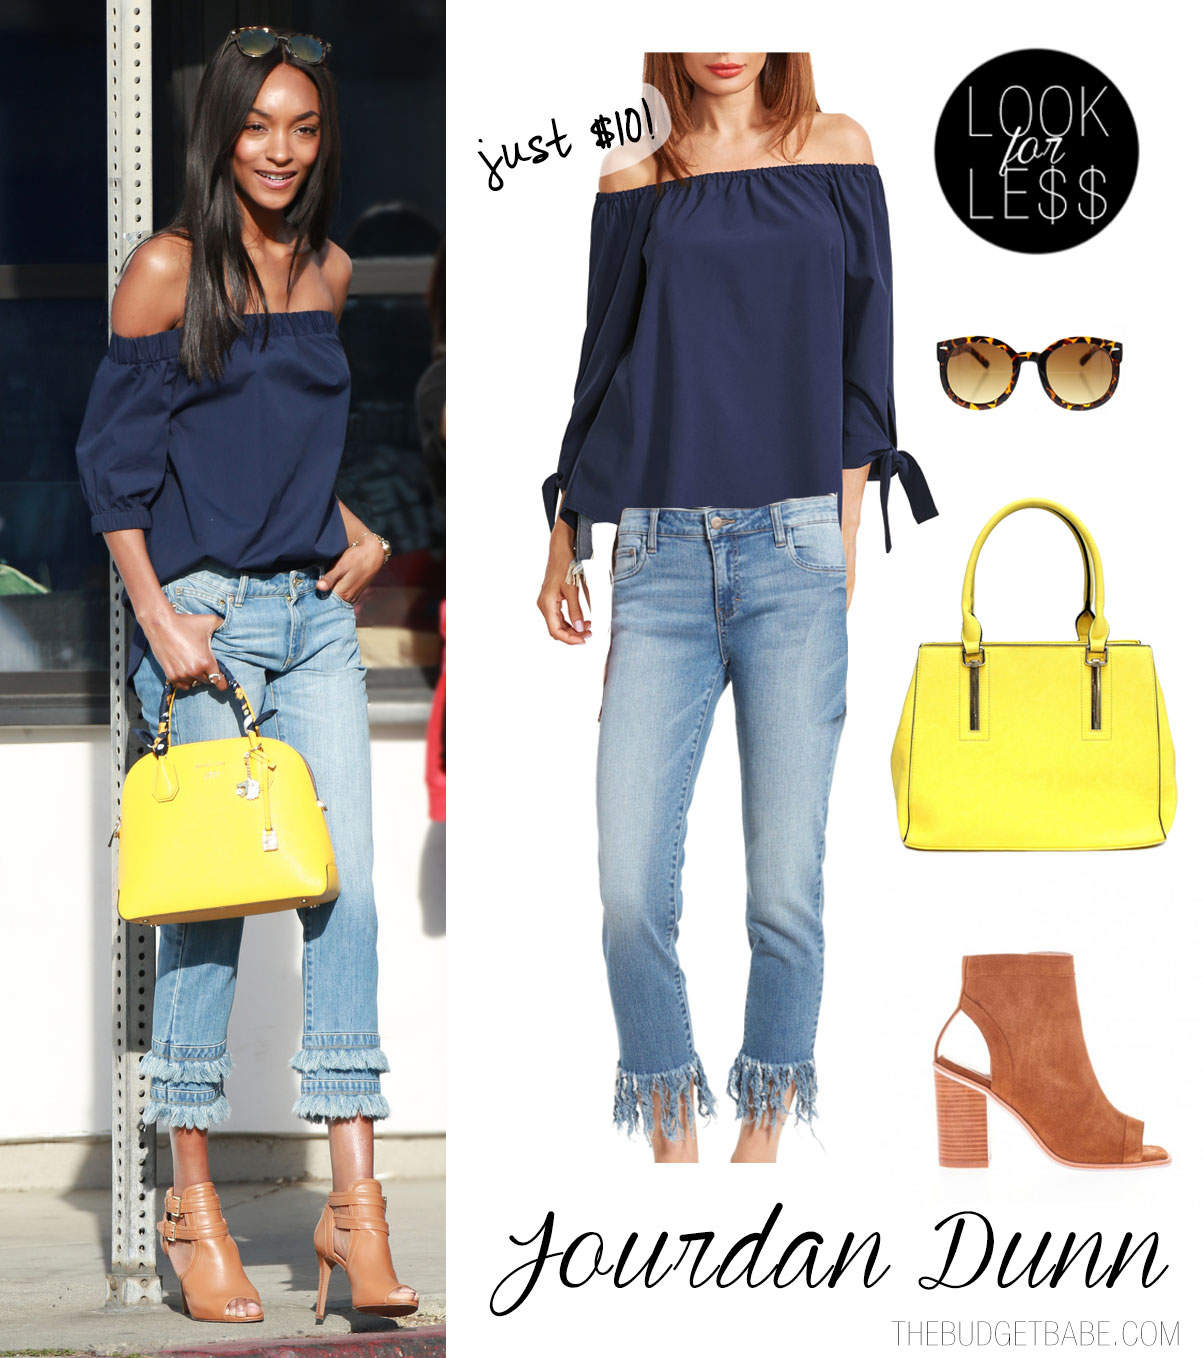 Jourdan Dunn pairs a navy off-the-shoulder top with fringe jeans and a yellow satchel.